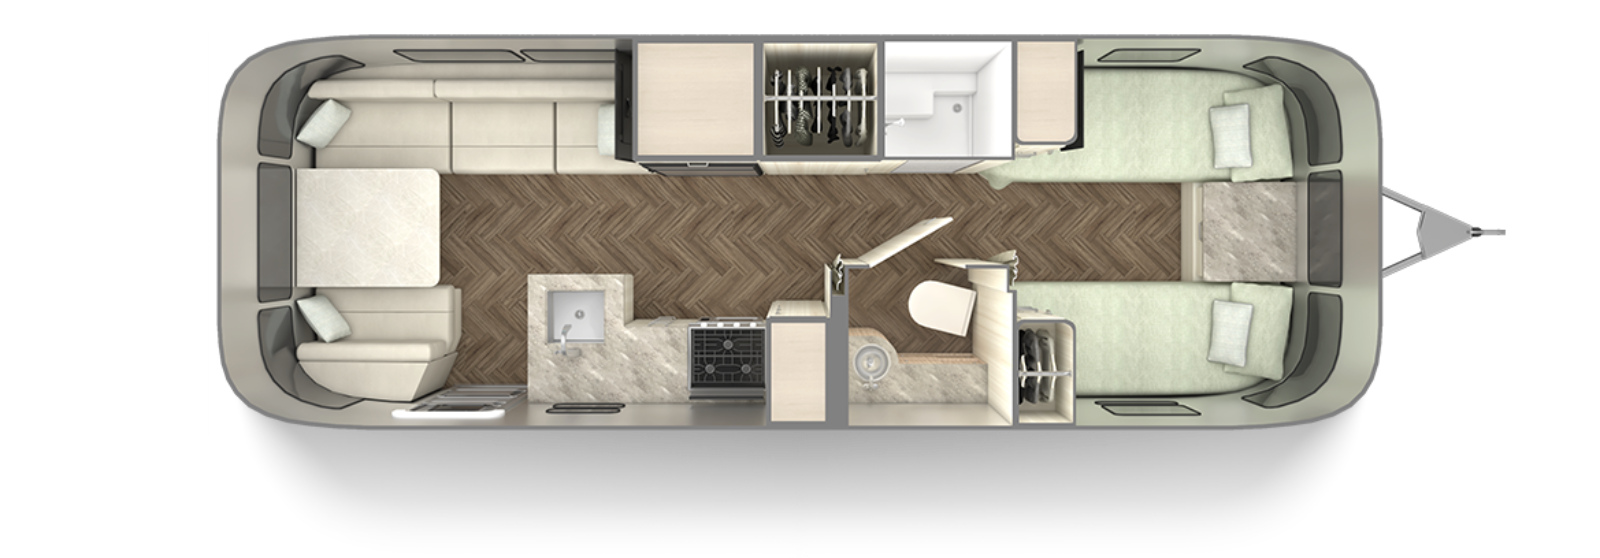 2021-Airstream-International-27FB-floor-plan-twin-seashell